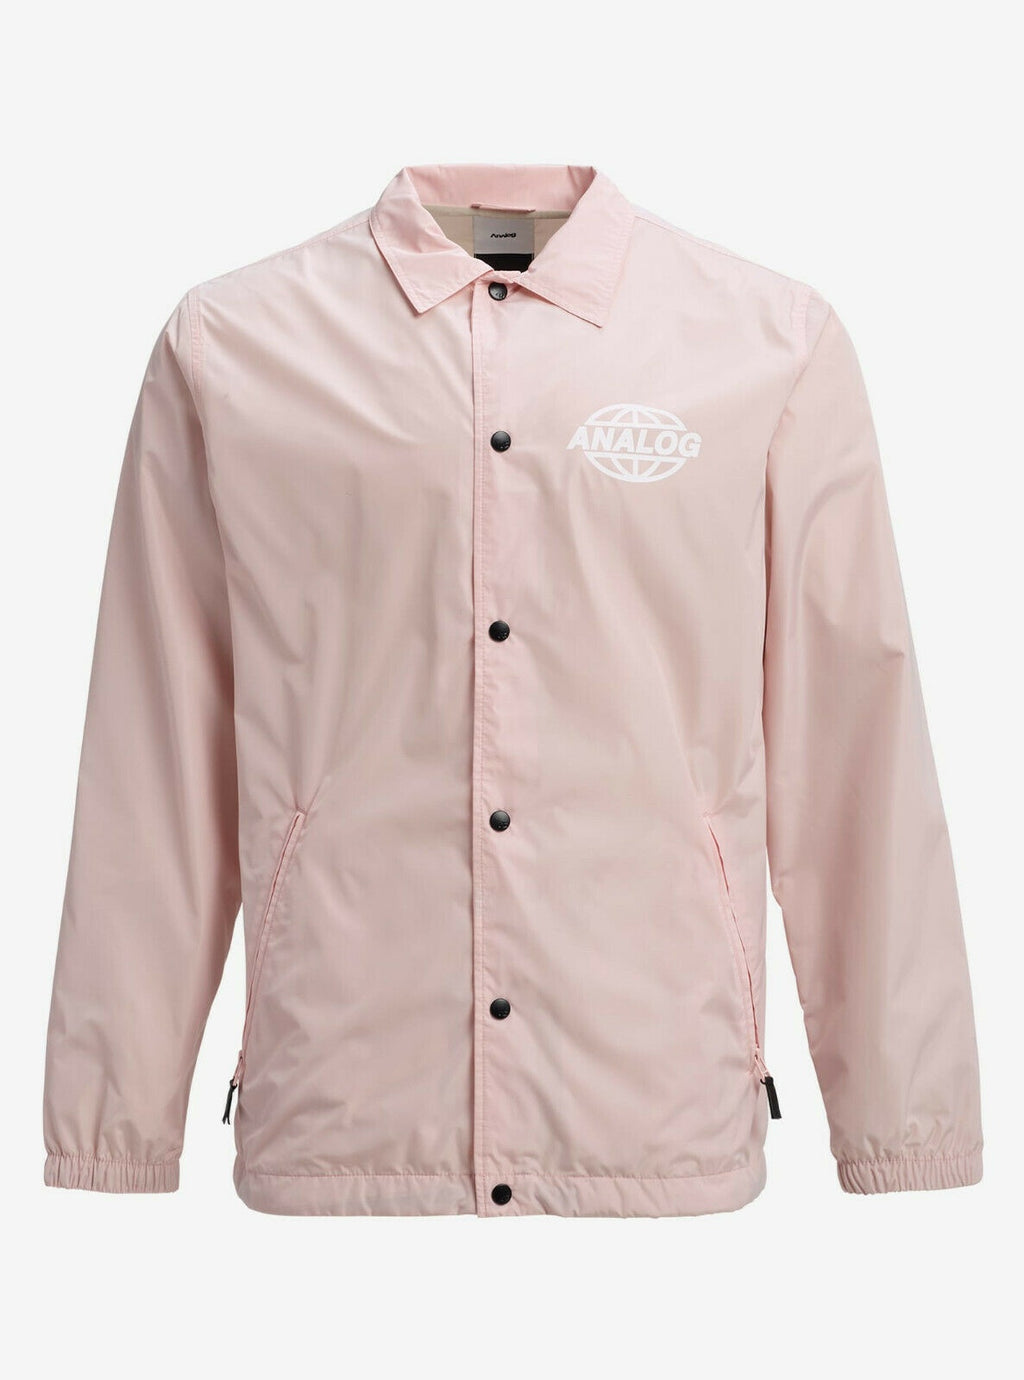 Analog Snow Ski Mens Sparkwave Jacket - Pink